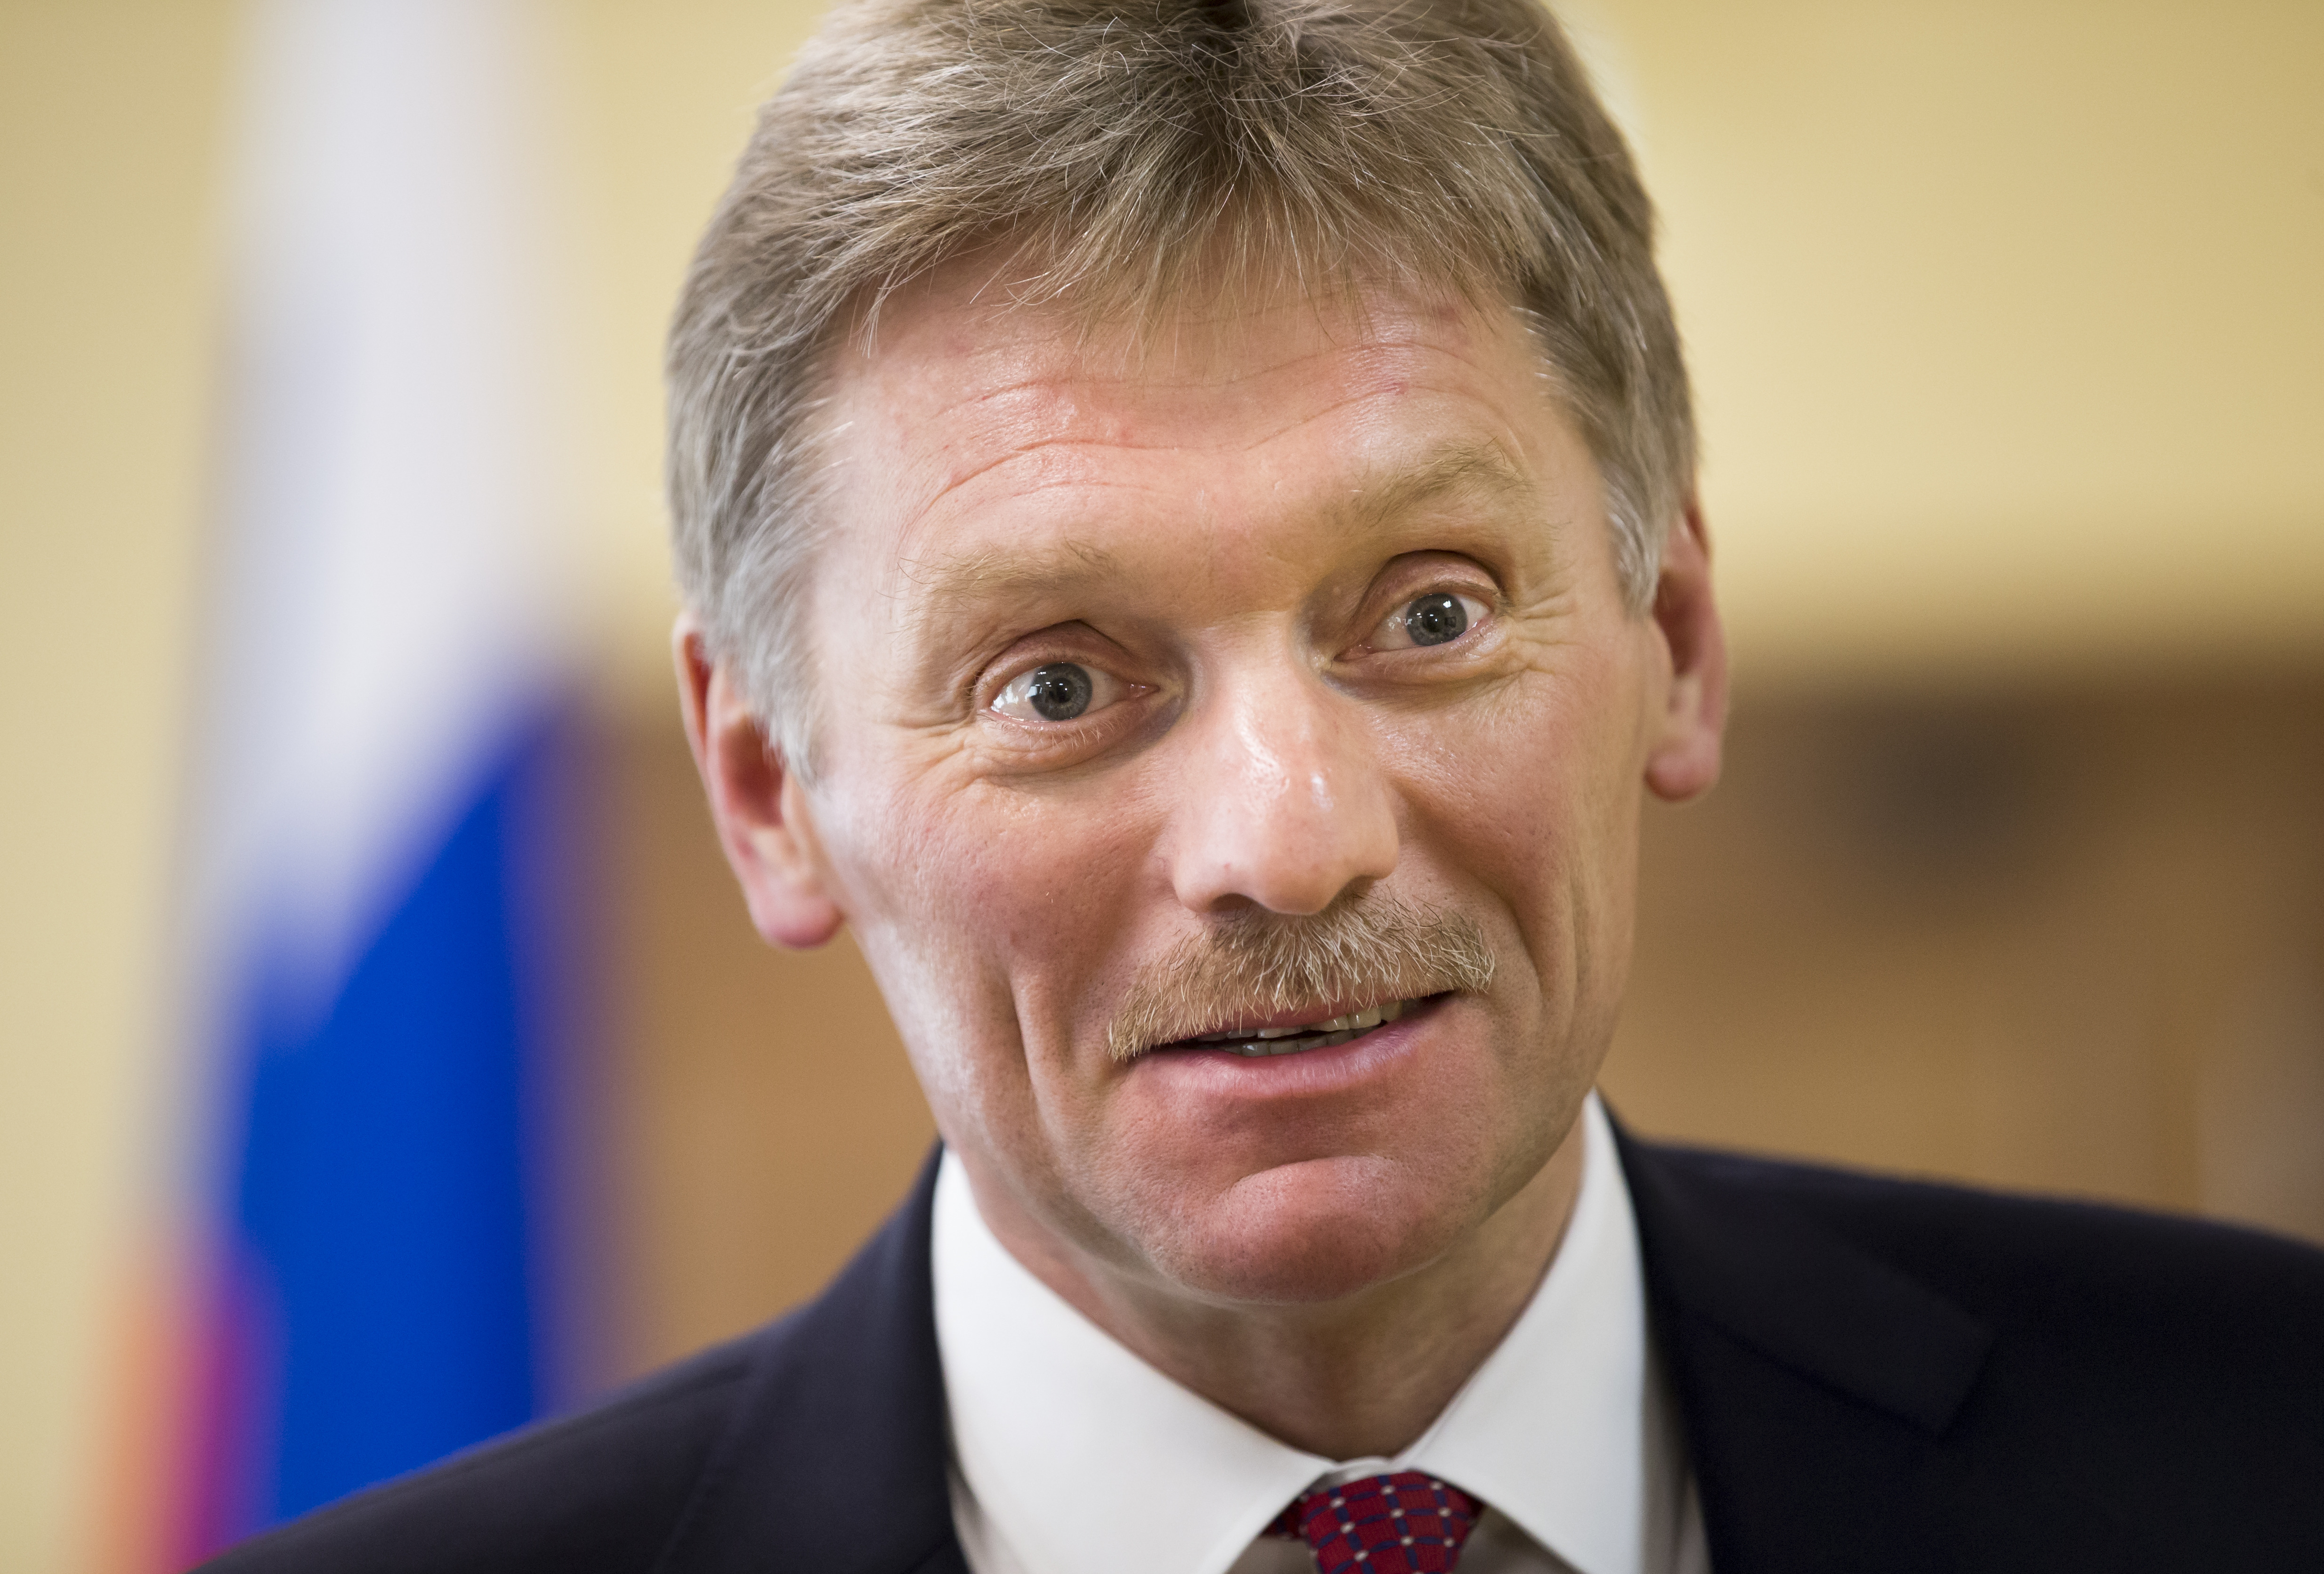 President Vladimir Putin's spokesman, Dmitry Peskov,  speaks to The Associated Press in Moscow, April 5, 2016. Peskov says the Russian leader has no connection whatsoever to offshore accounts mentioned in the so-called Panama Papers.